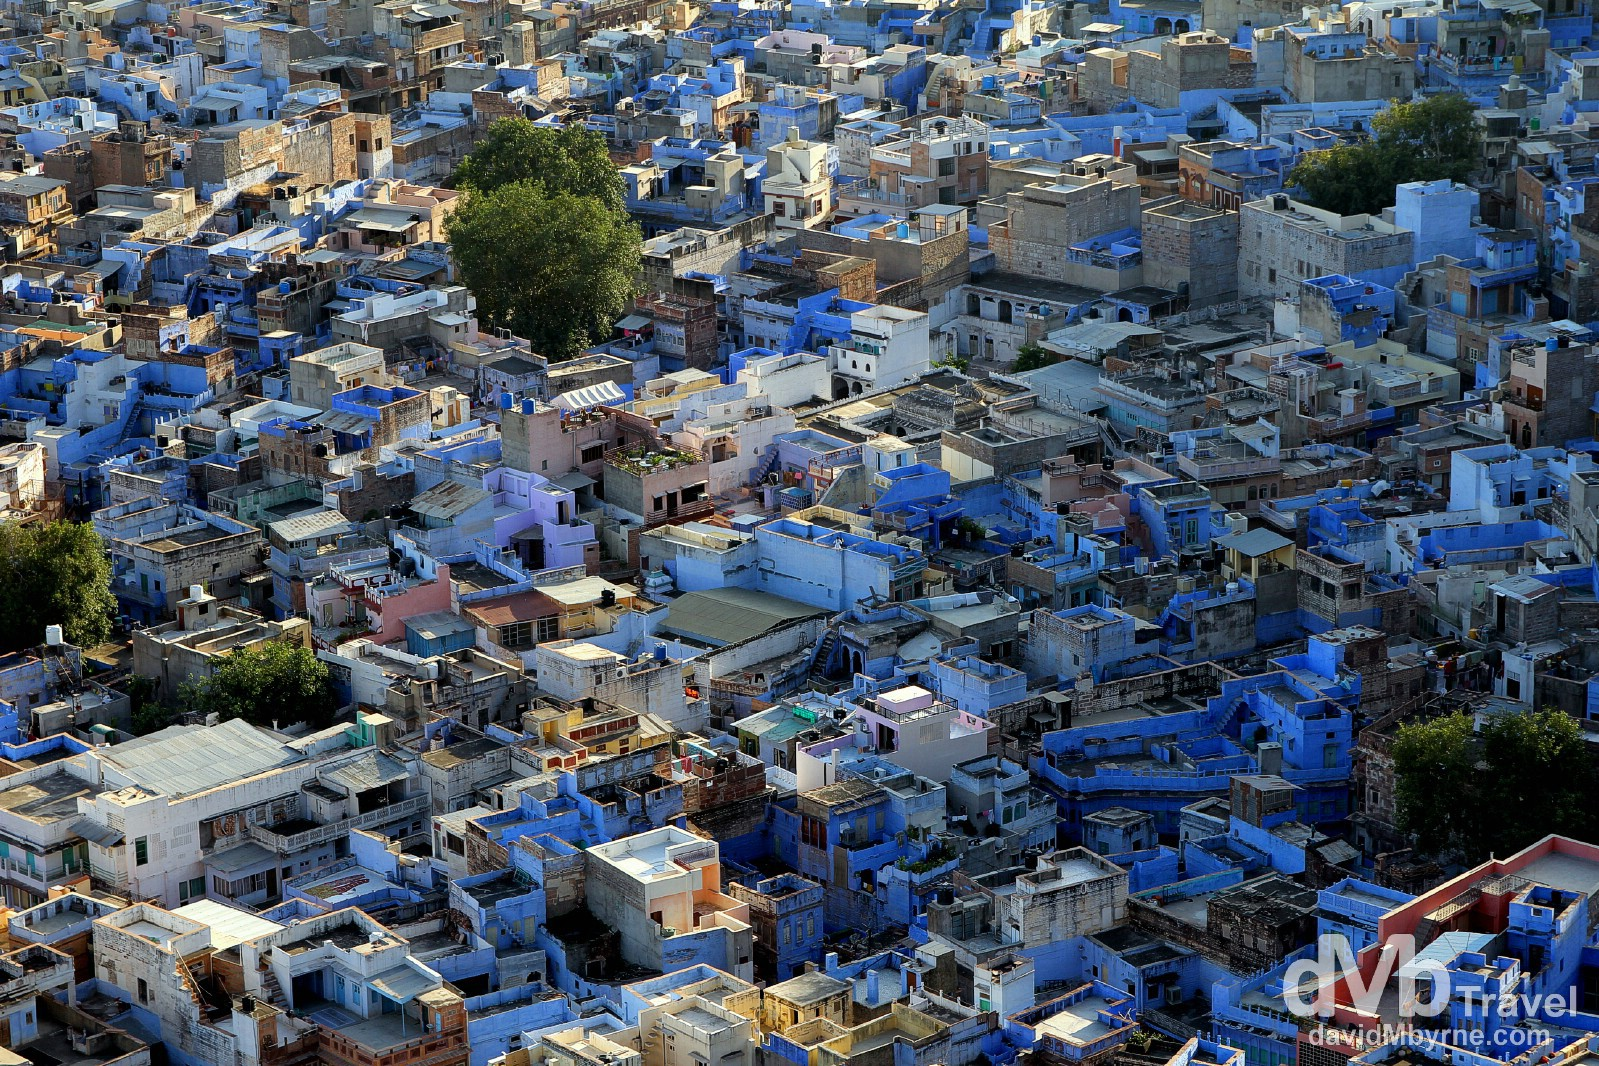 Jodhpur, The Blue City, as seen from the walls of Mehrangarh Fort. Jodhpur, Rajasthan, India. October 6th 2012.